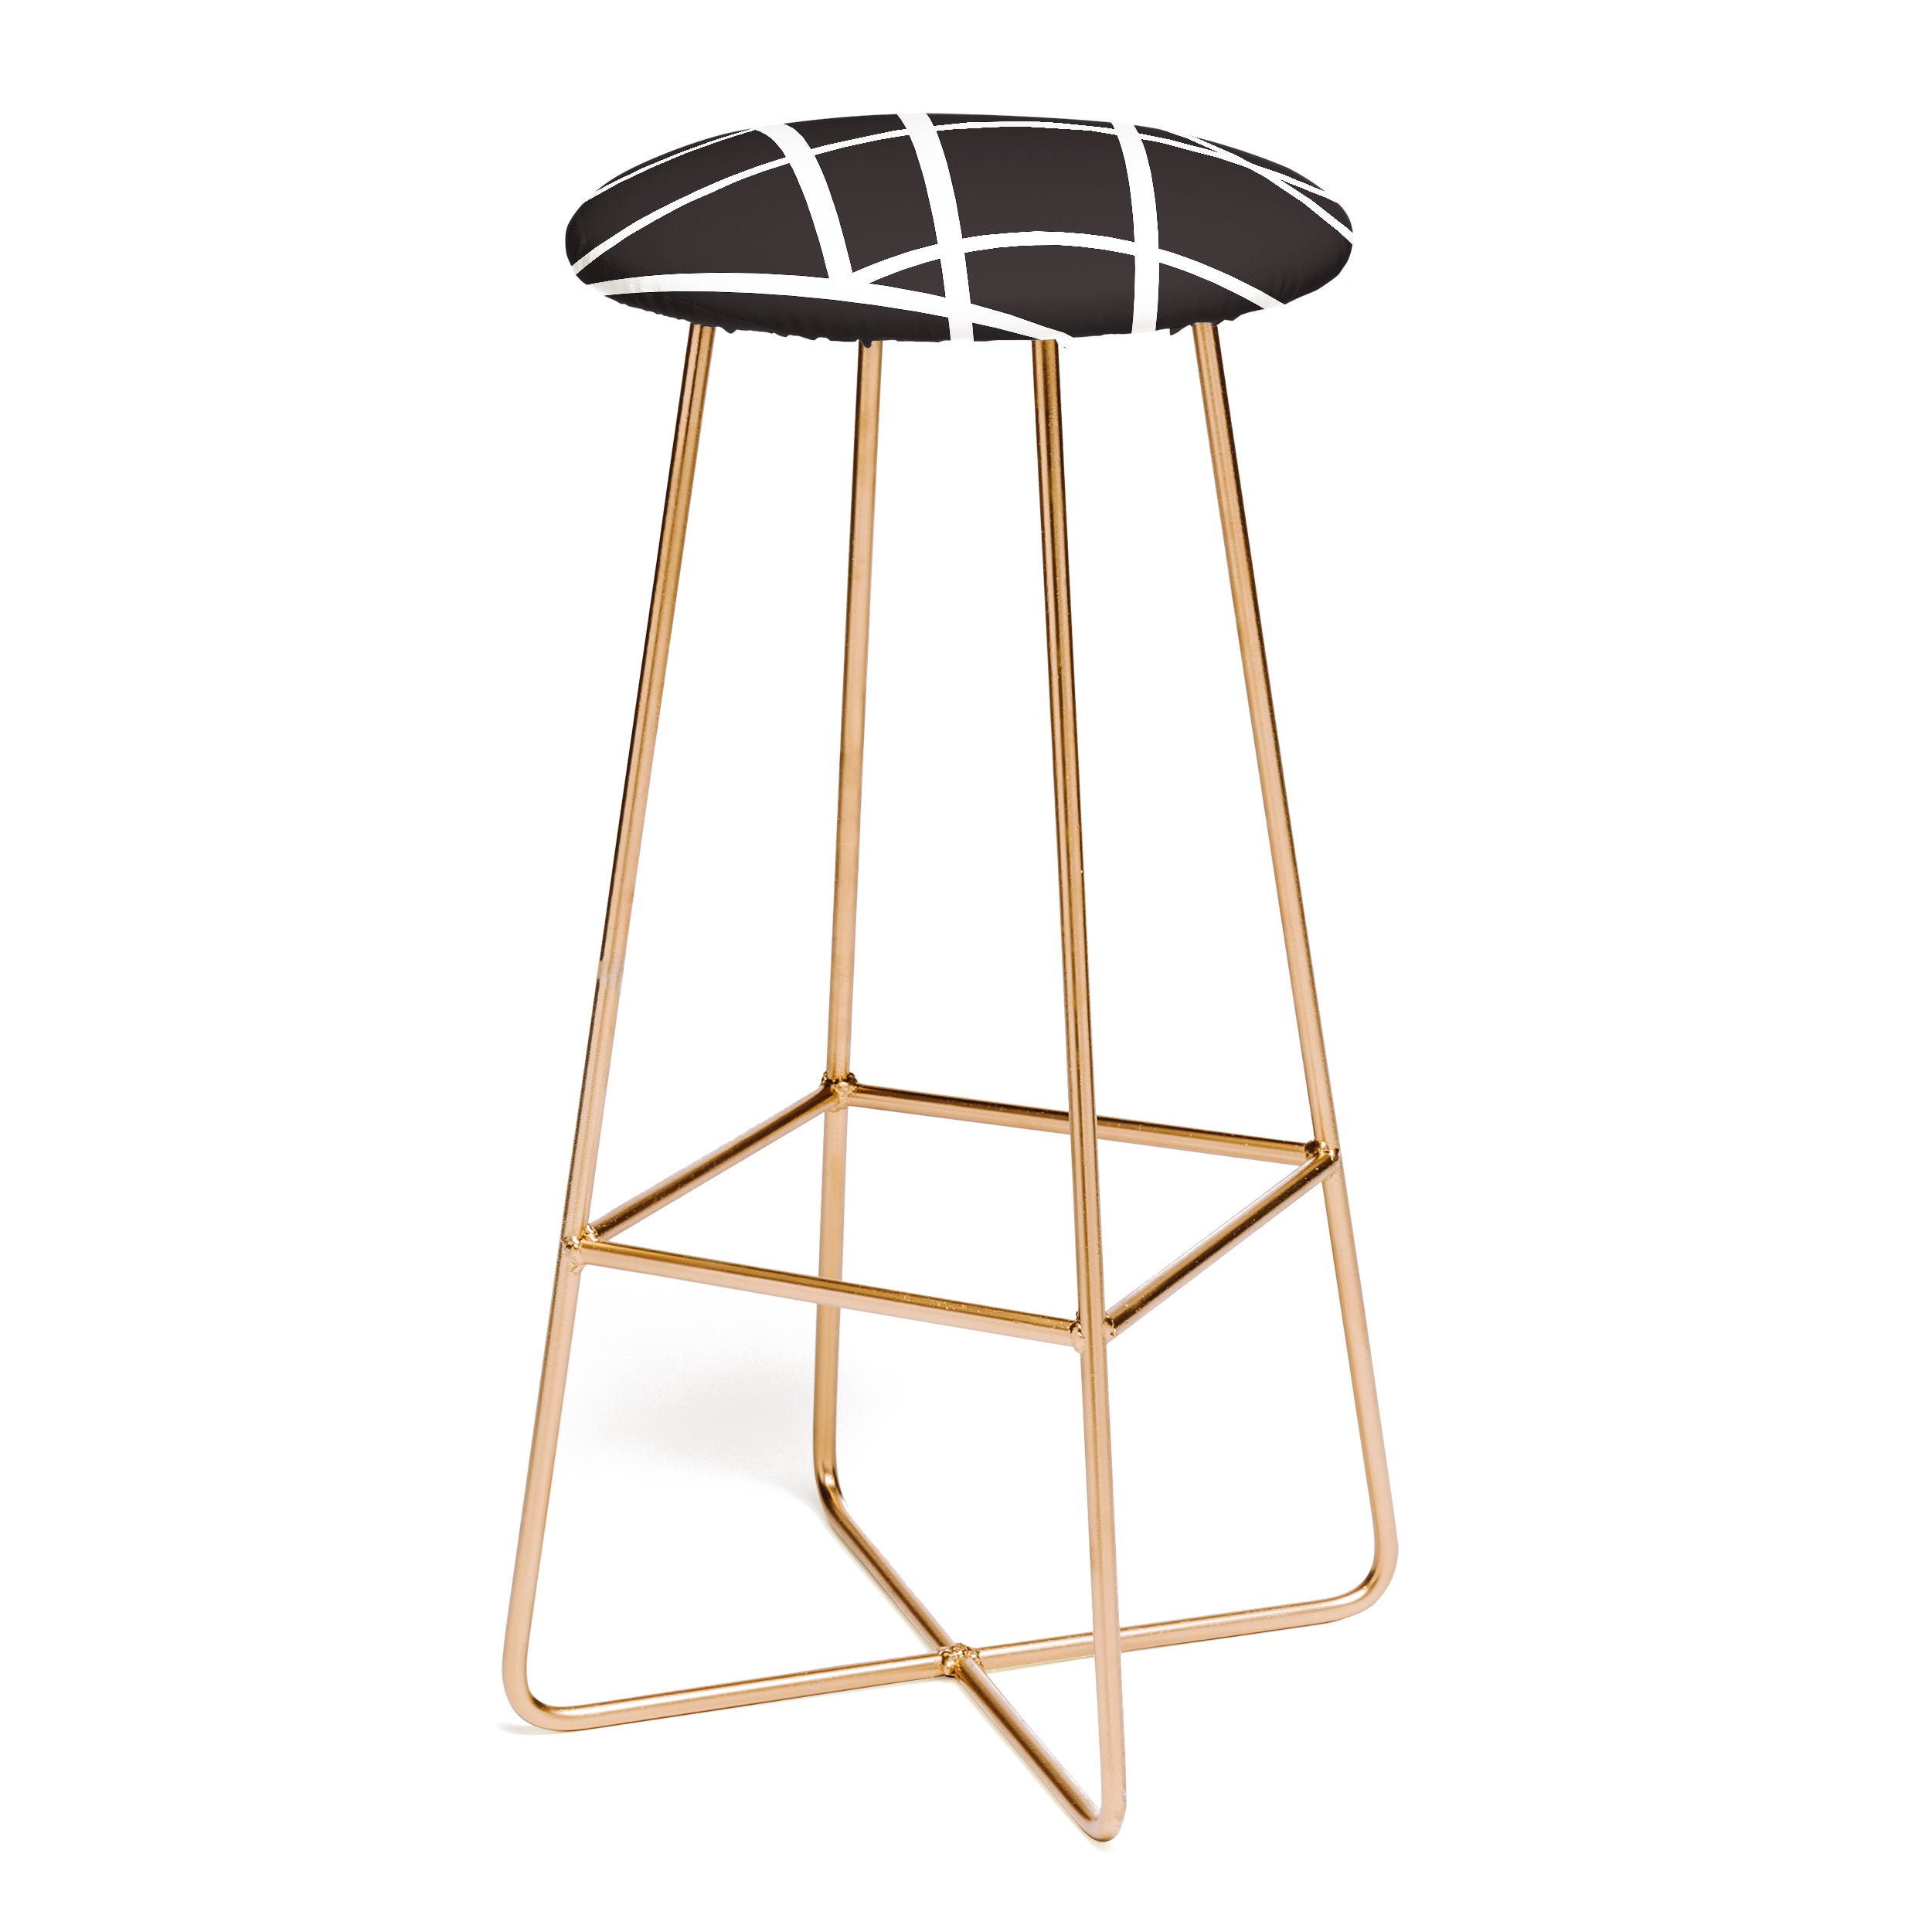 Vy La Black and White Lines Bar Stool